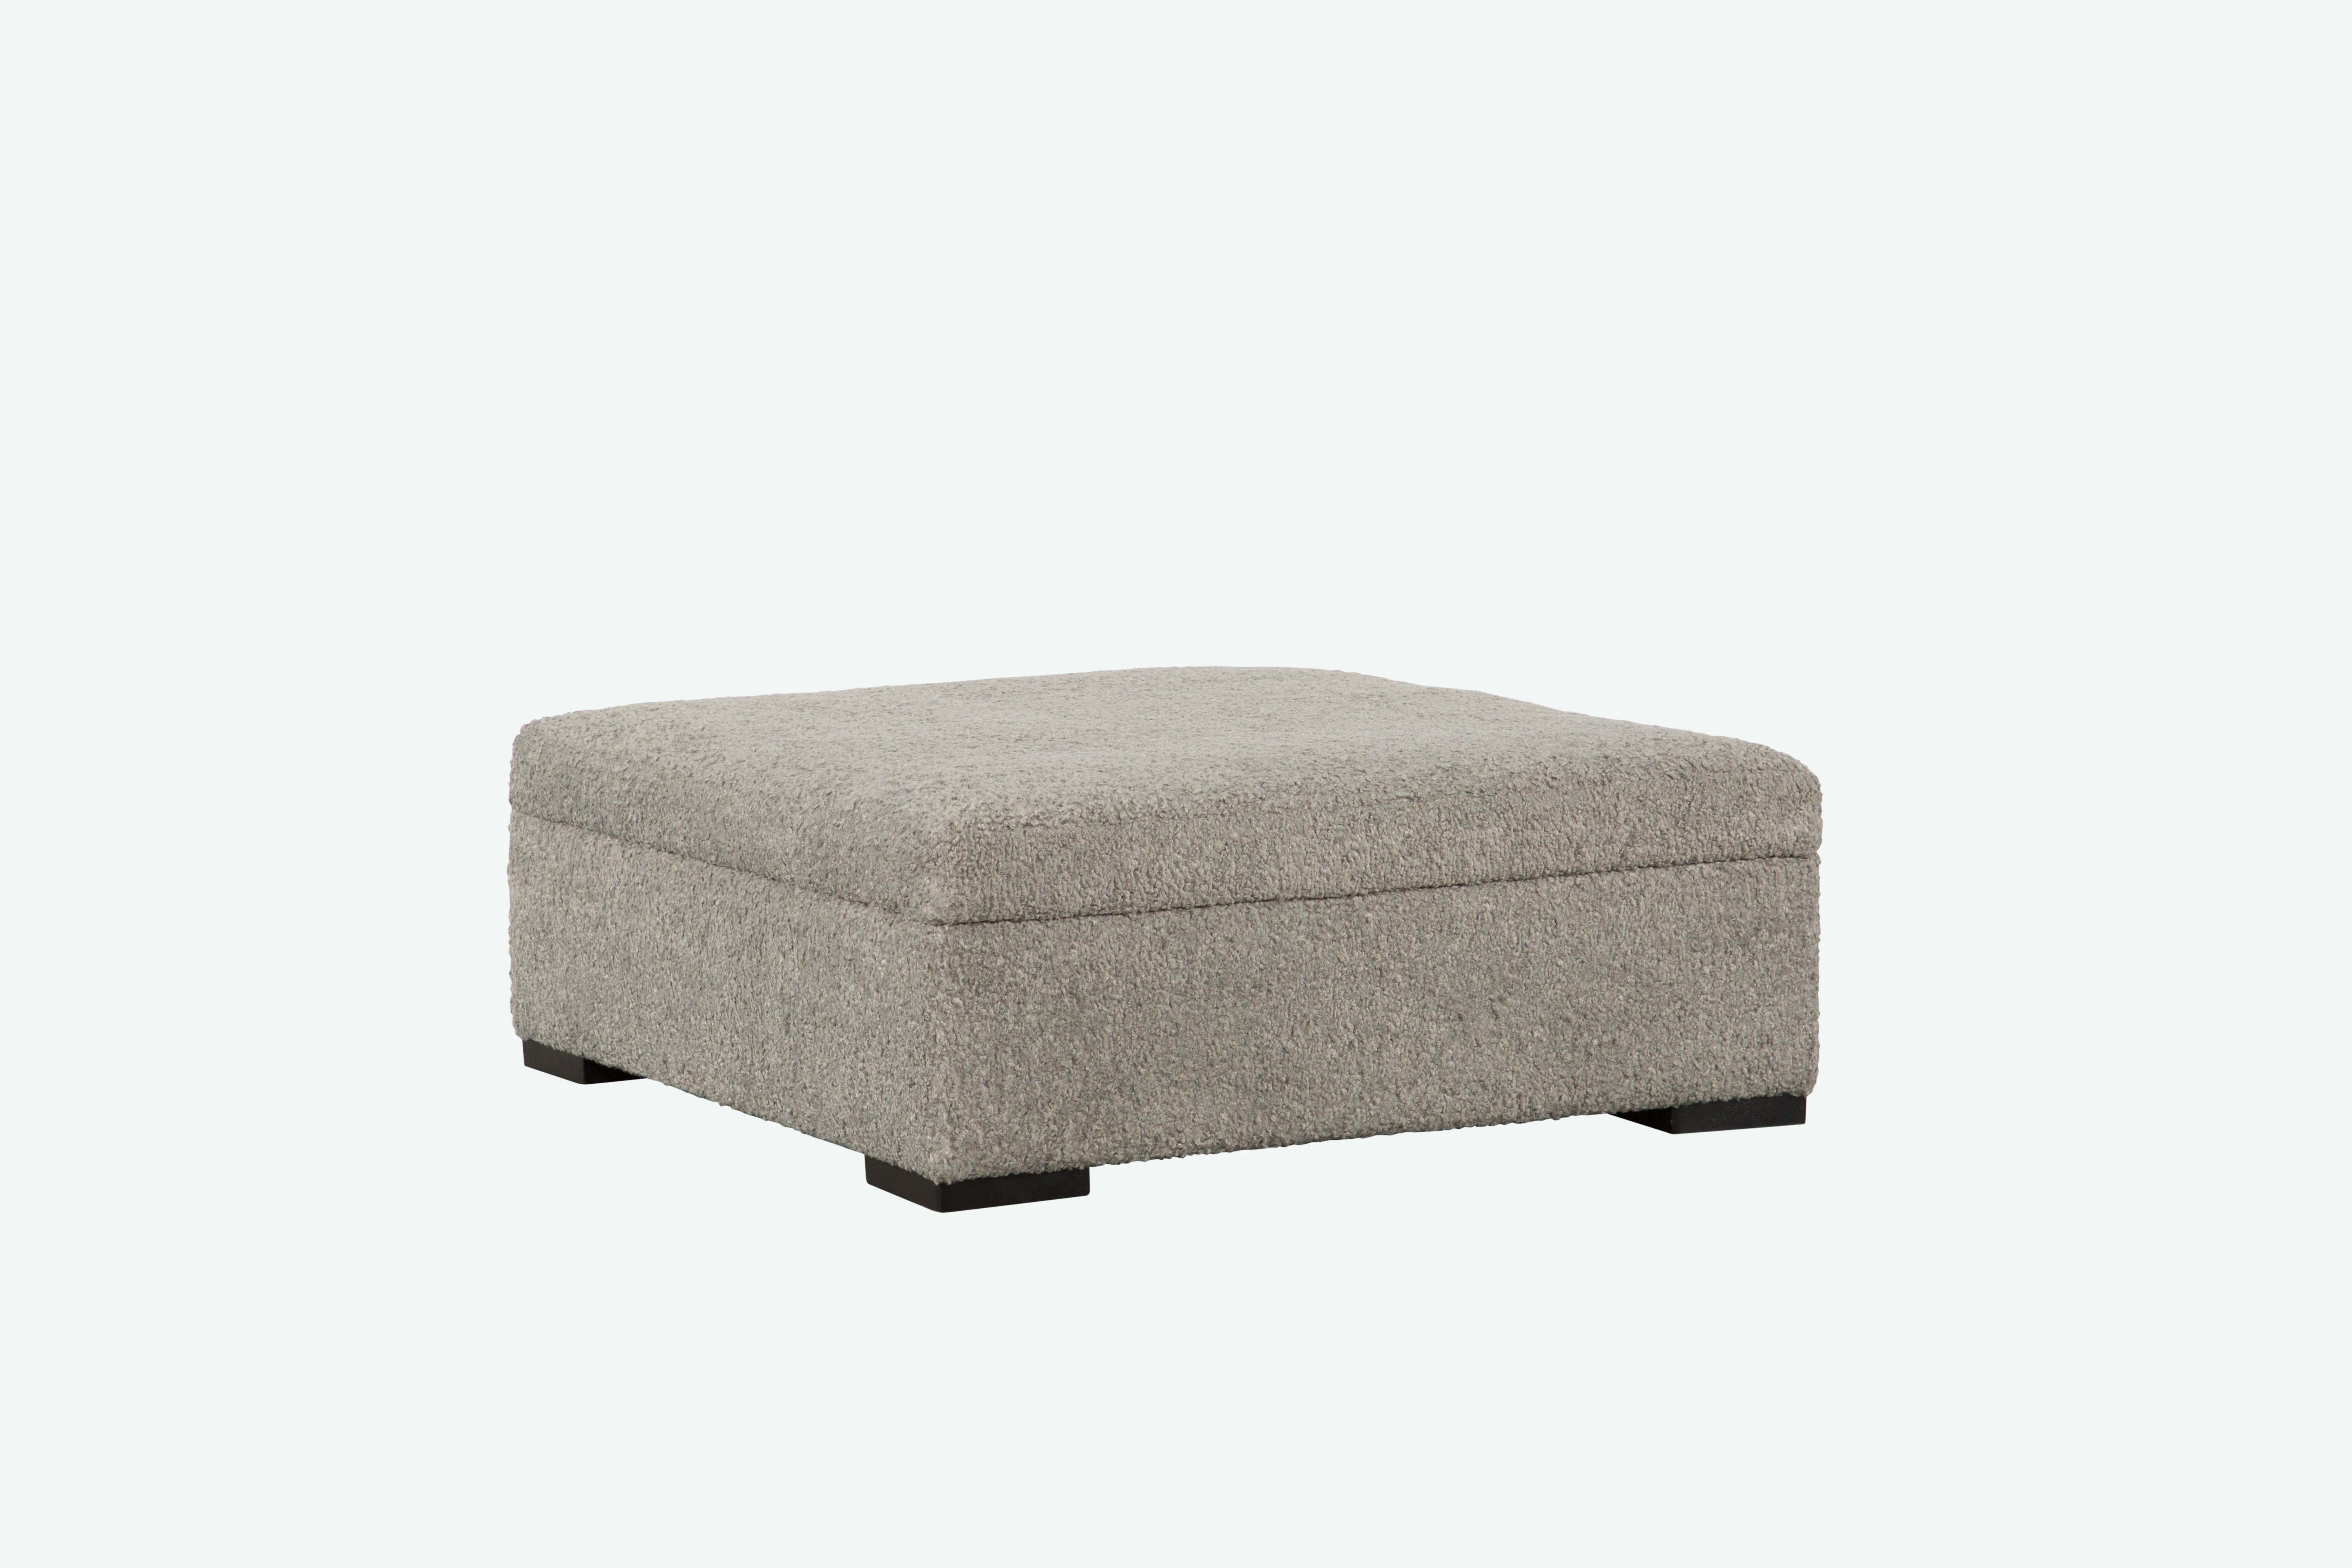 Nate Berkus Just Launched A Home Collection With Hubby Jeremiah In Matteo Arm Sofa Chairs By Nate Berkus And Jeremiah Brent (Image 14 of 25)